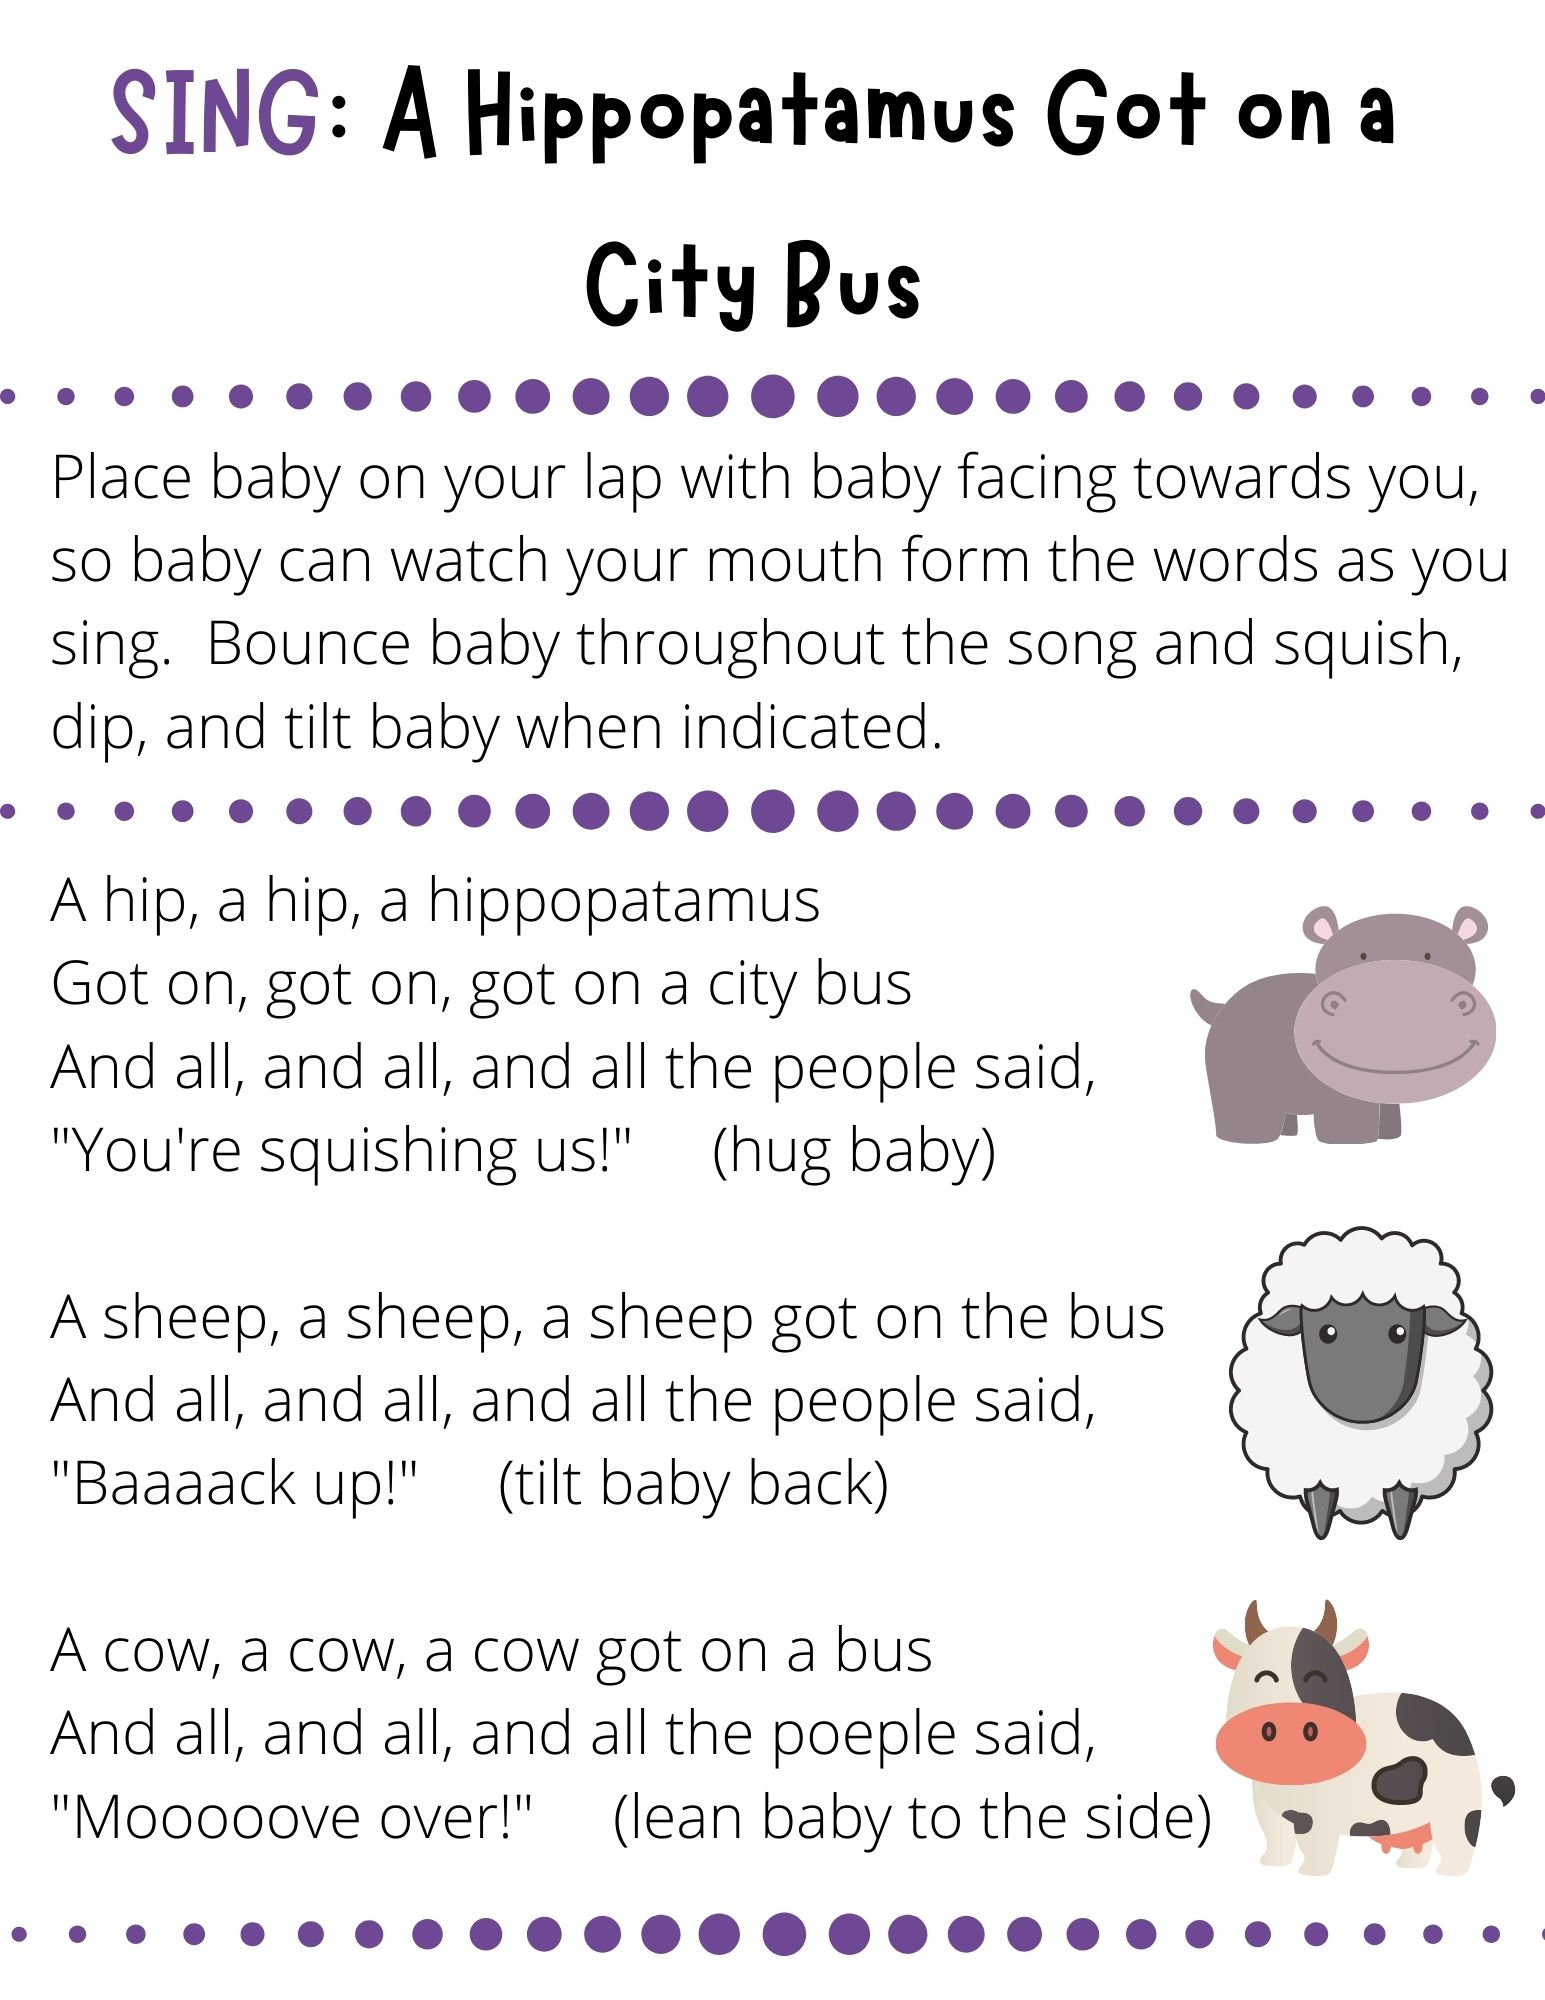 """A hip, a hip, a hippopatamus Got on, got on, got on a city bus And all, and all, and all the people said, """"You're squishing us!""""     (hug baby)  A sheep, a sheep, a sheep got on the bus And all, and all, and all the people said, """"Baaaack up!""""     (tilt baby back)  A cow, a cow, a cow got on a bus And all, and all, and all the poeple said, """"Mooooove over!""""     (lean baby to the side)"""